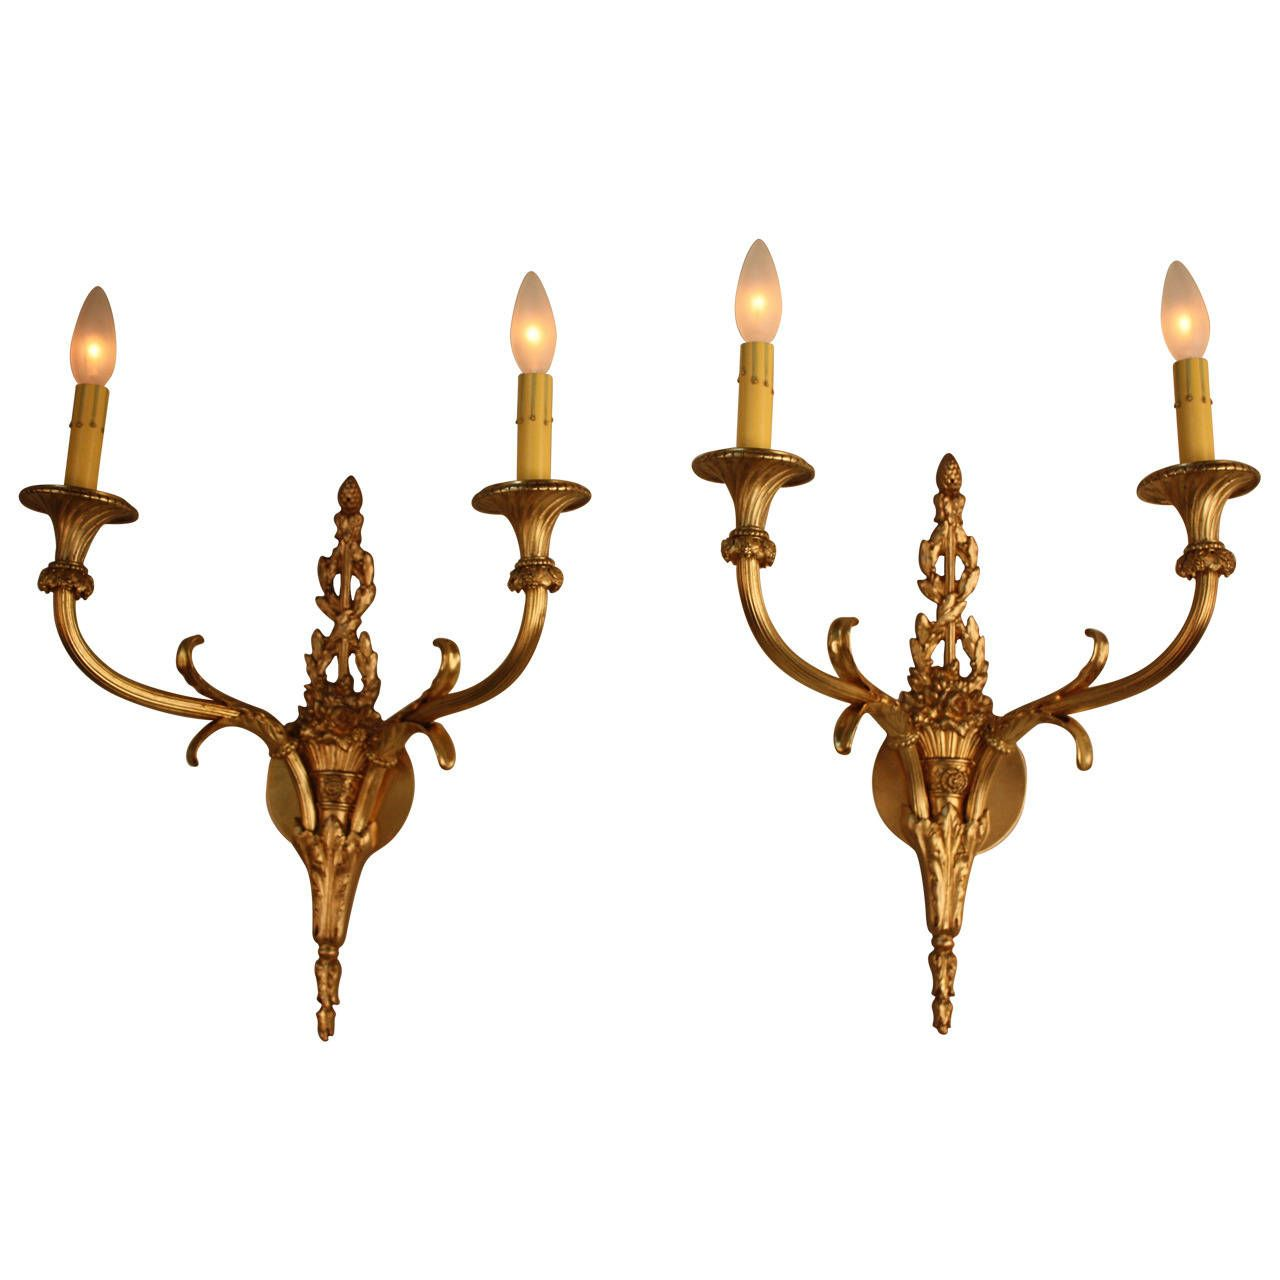 A pair of exquisite antique French bronze wall scones. Each sconce features a double-light and superb workmanship.